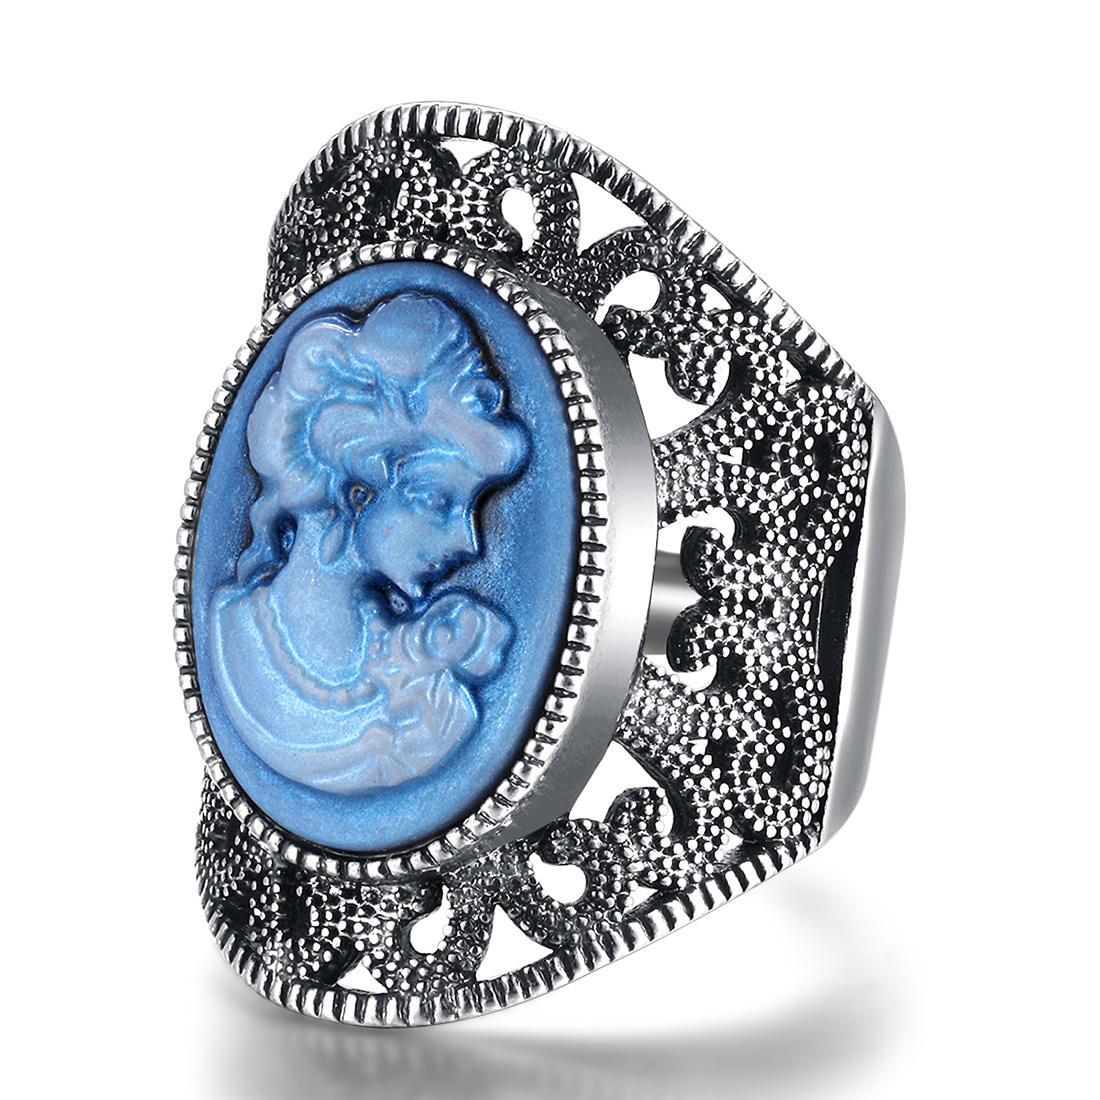 Vintage Silver Beauty Rings For Women Fashion Jewelry